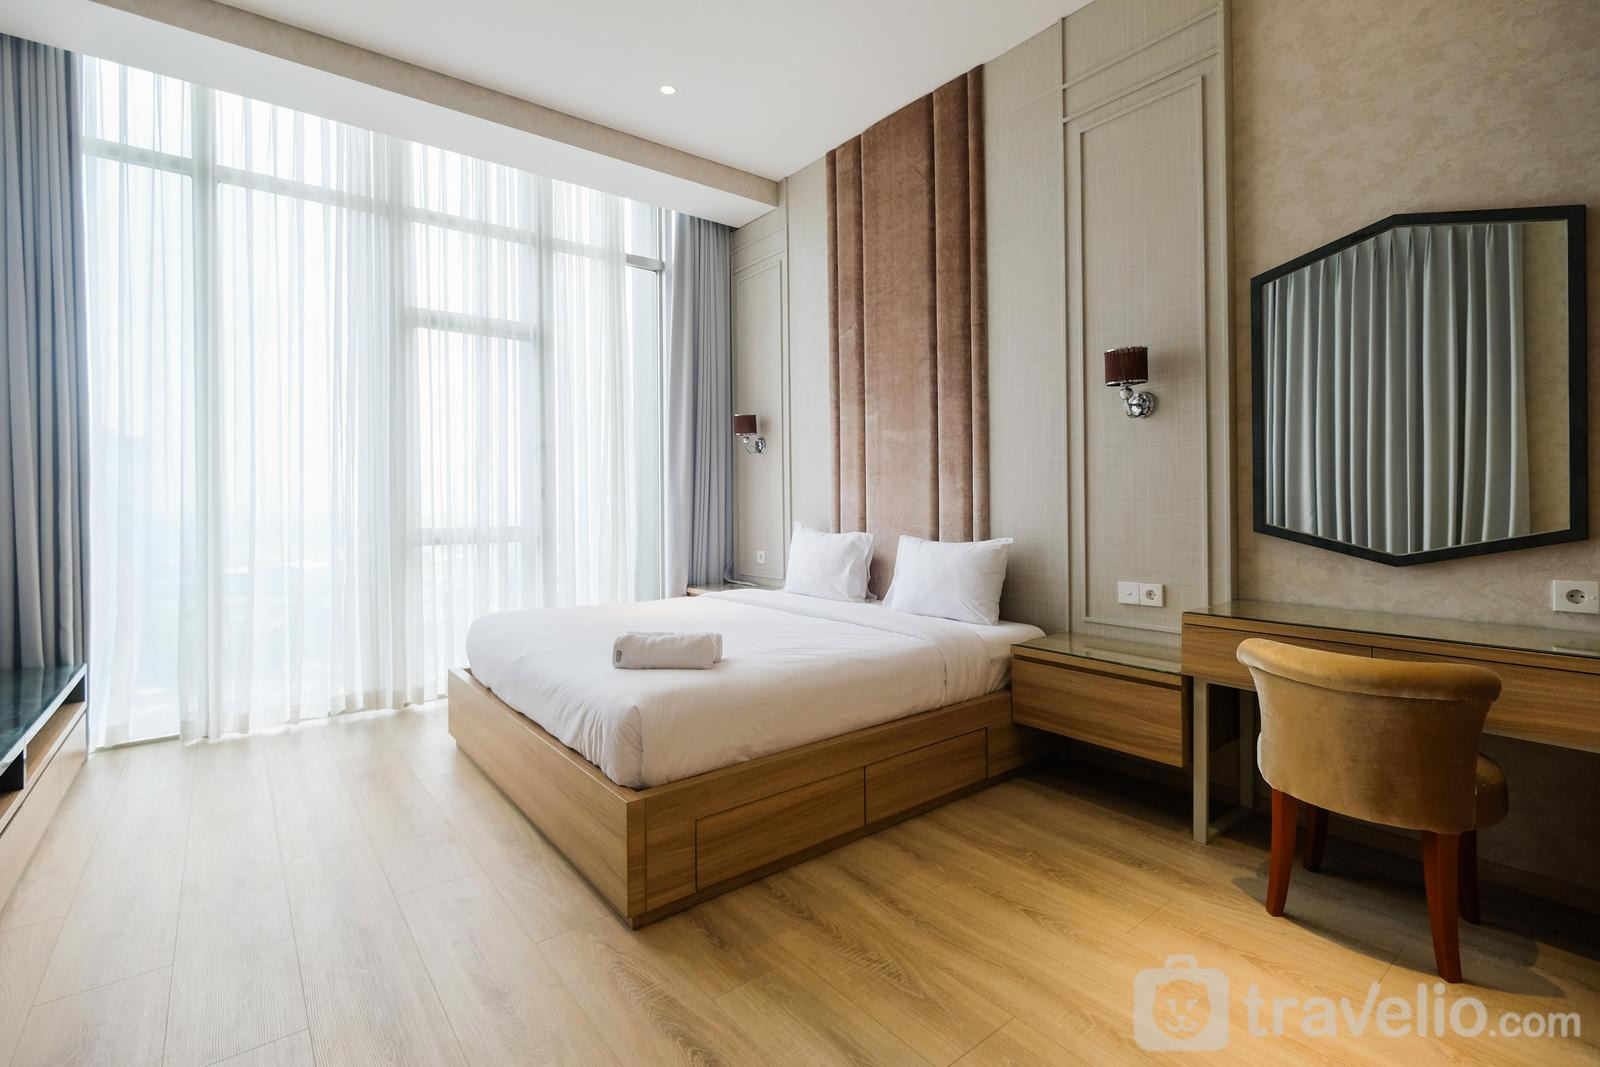 Saumata Apartment - Luxurious 3BR Loft at Saumata Apartment Alam Sutera By Travelio